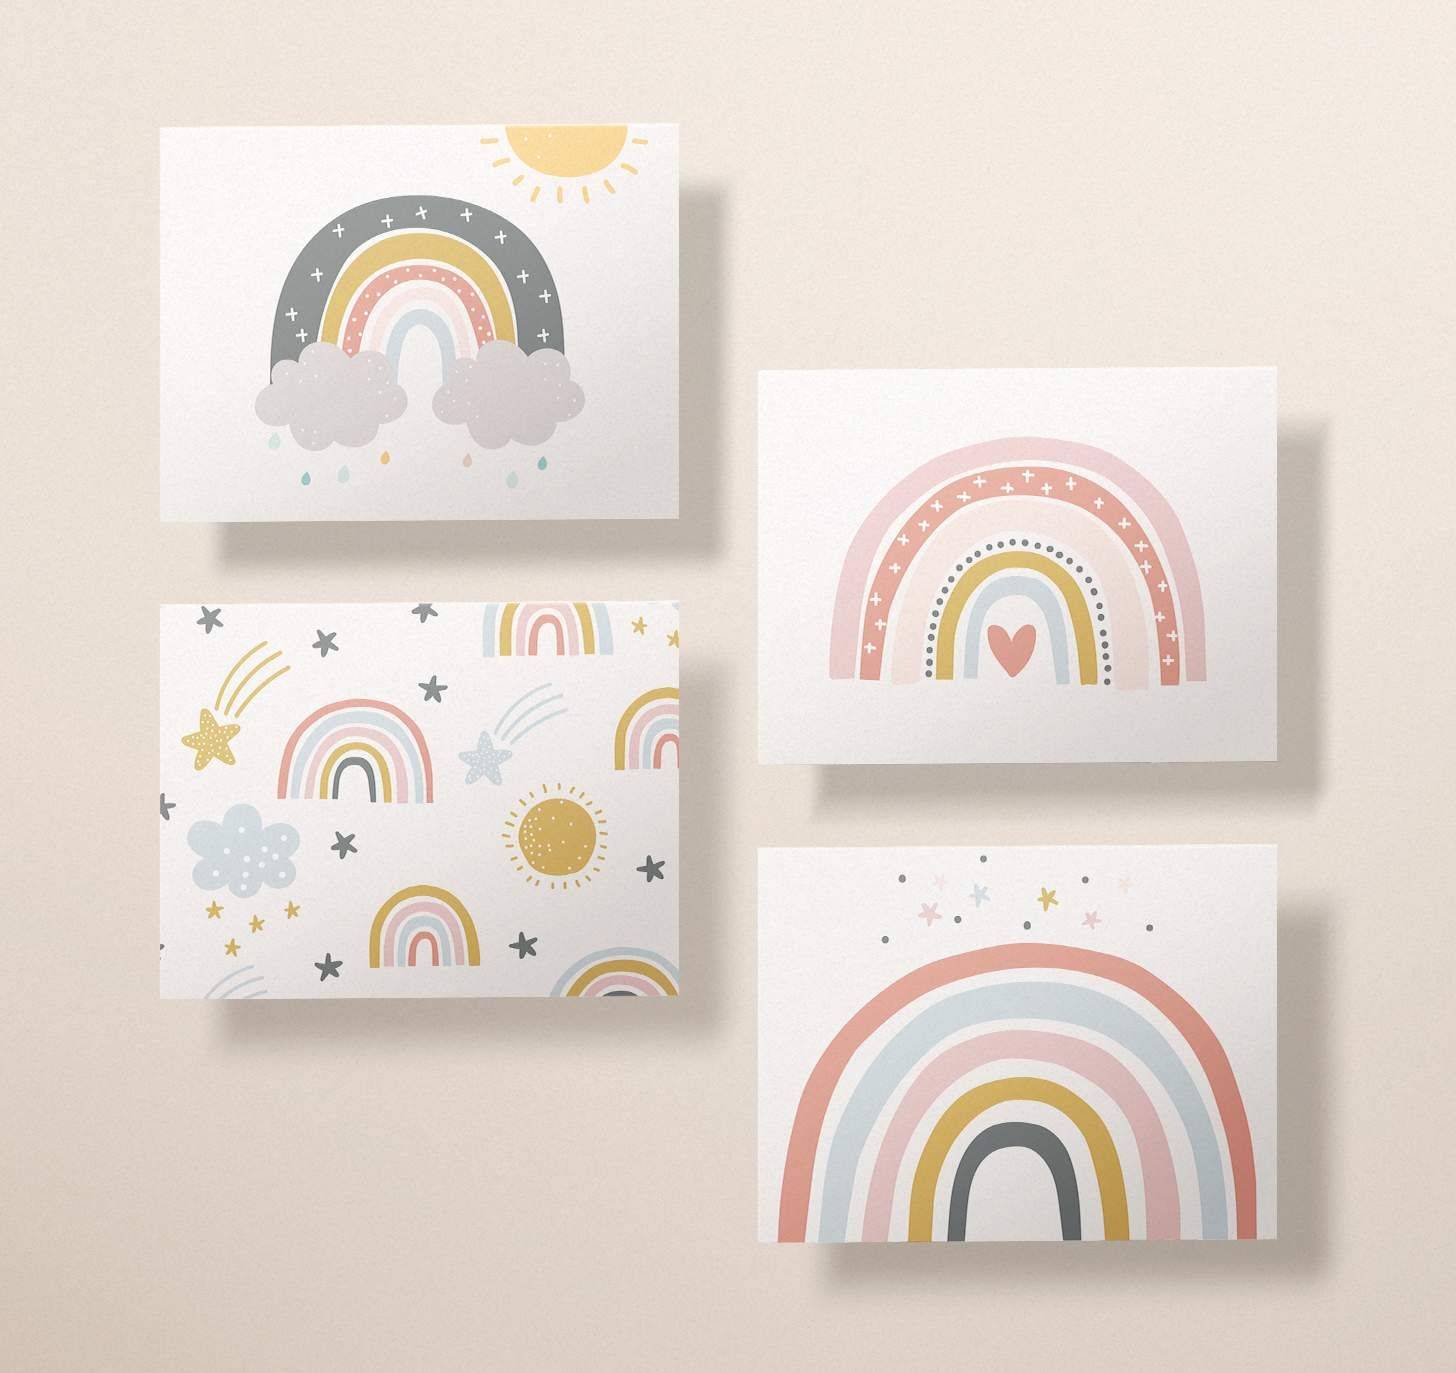 Four rainbow card designs with clouds, stars, and hearts